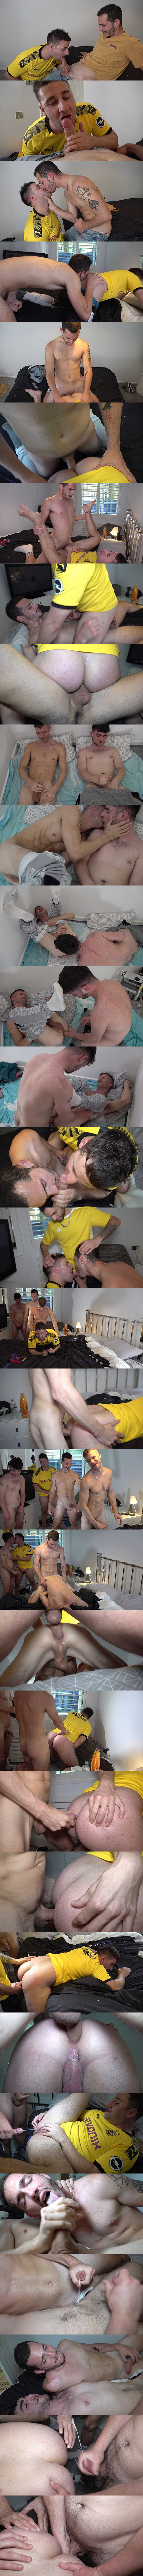 Hungyoungbrit - Marc Evertarde, Hung Young Brit, Mickey and two hot Scotish fuckers have a homemade sex party before Marc and Hung Young Brit get gangbanged and seeded in 5 Young Bareback Chavs 02